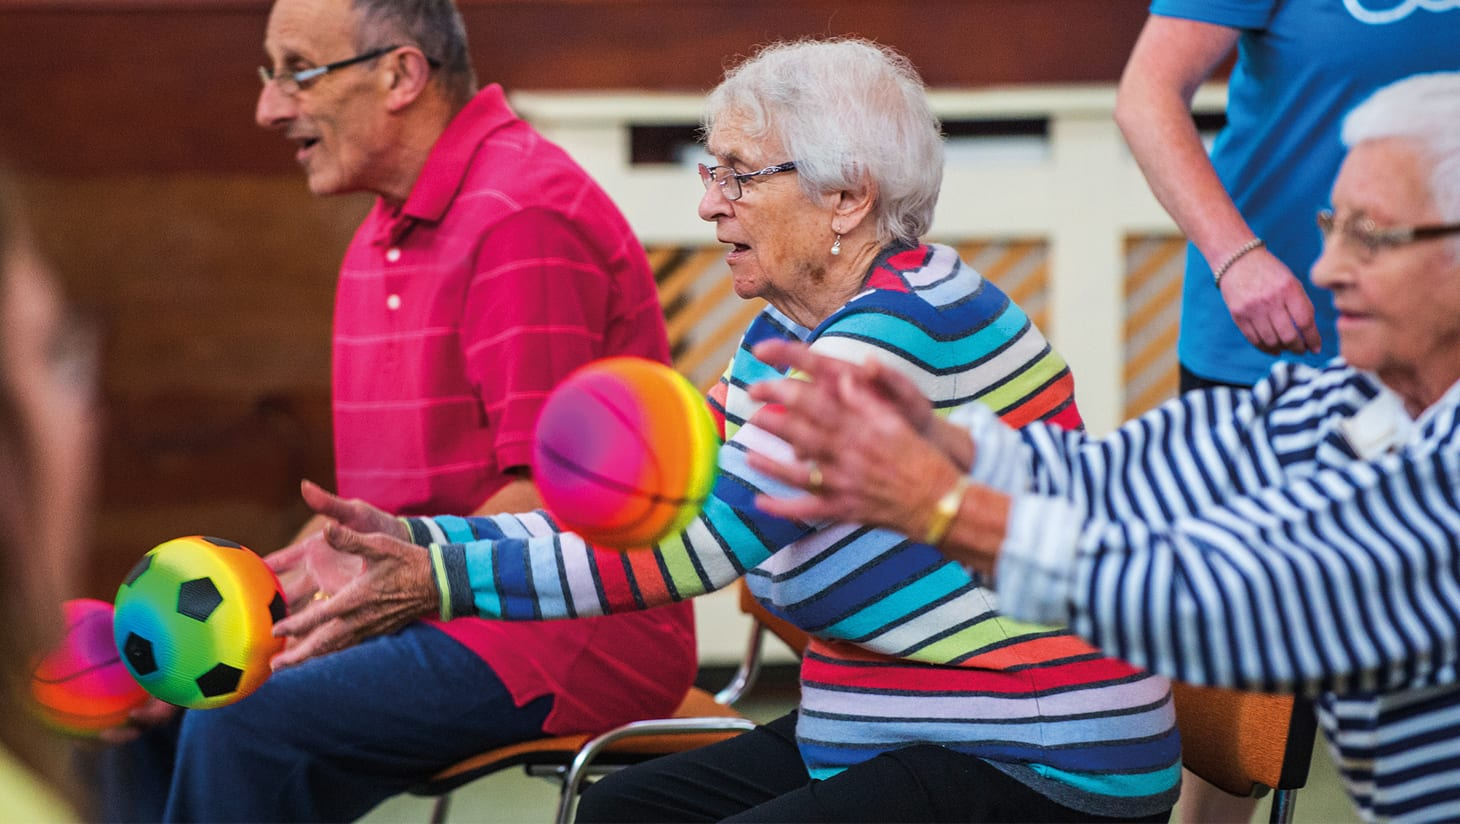 Mayflower care homes given some Oomph! with new wellbeing partnership!